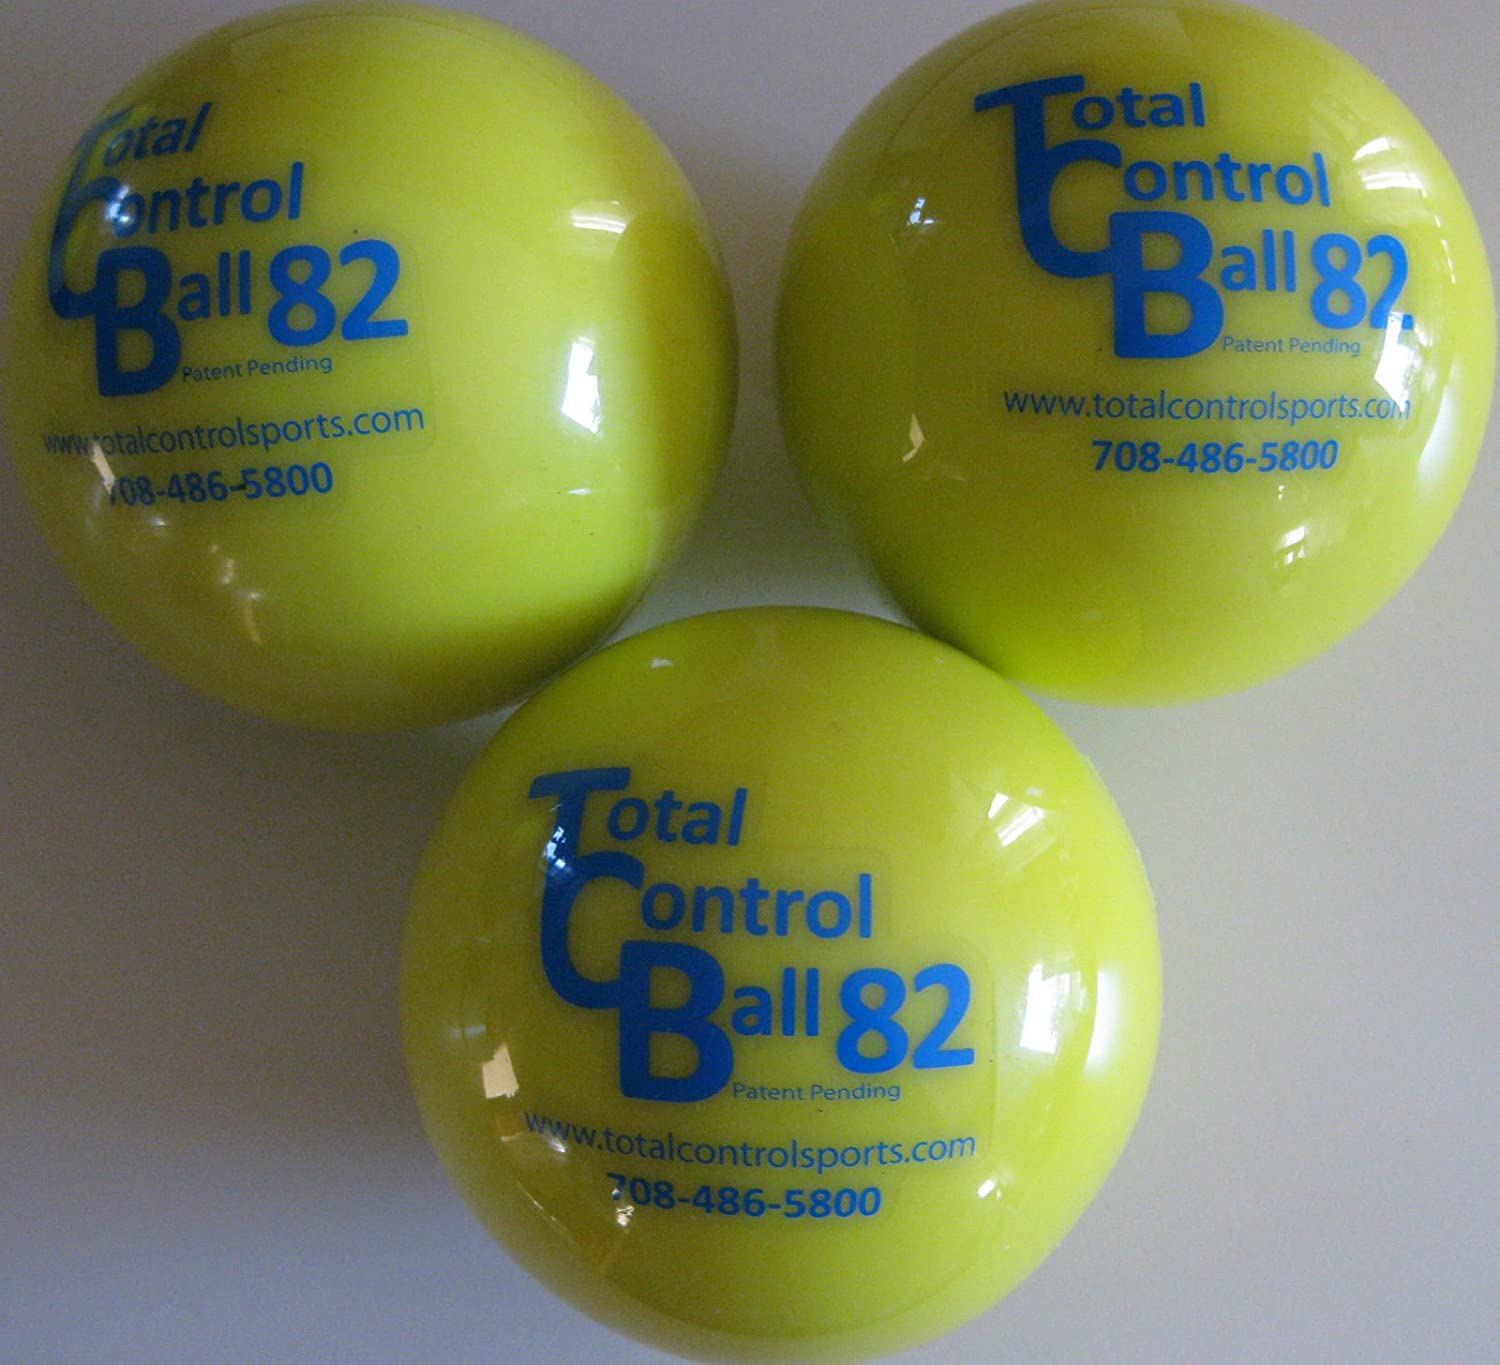 TOTAL CONTROL BALL TCB Some reservation 82 Weighted Max 54% OFF Hitting Softball Training Bat